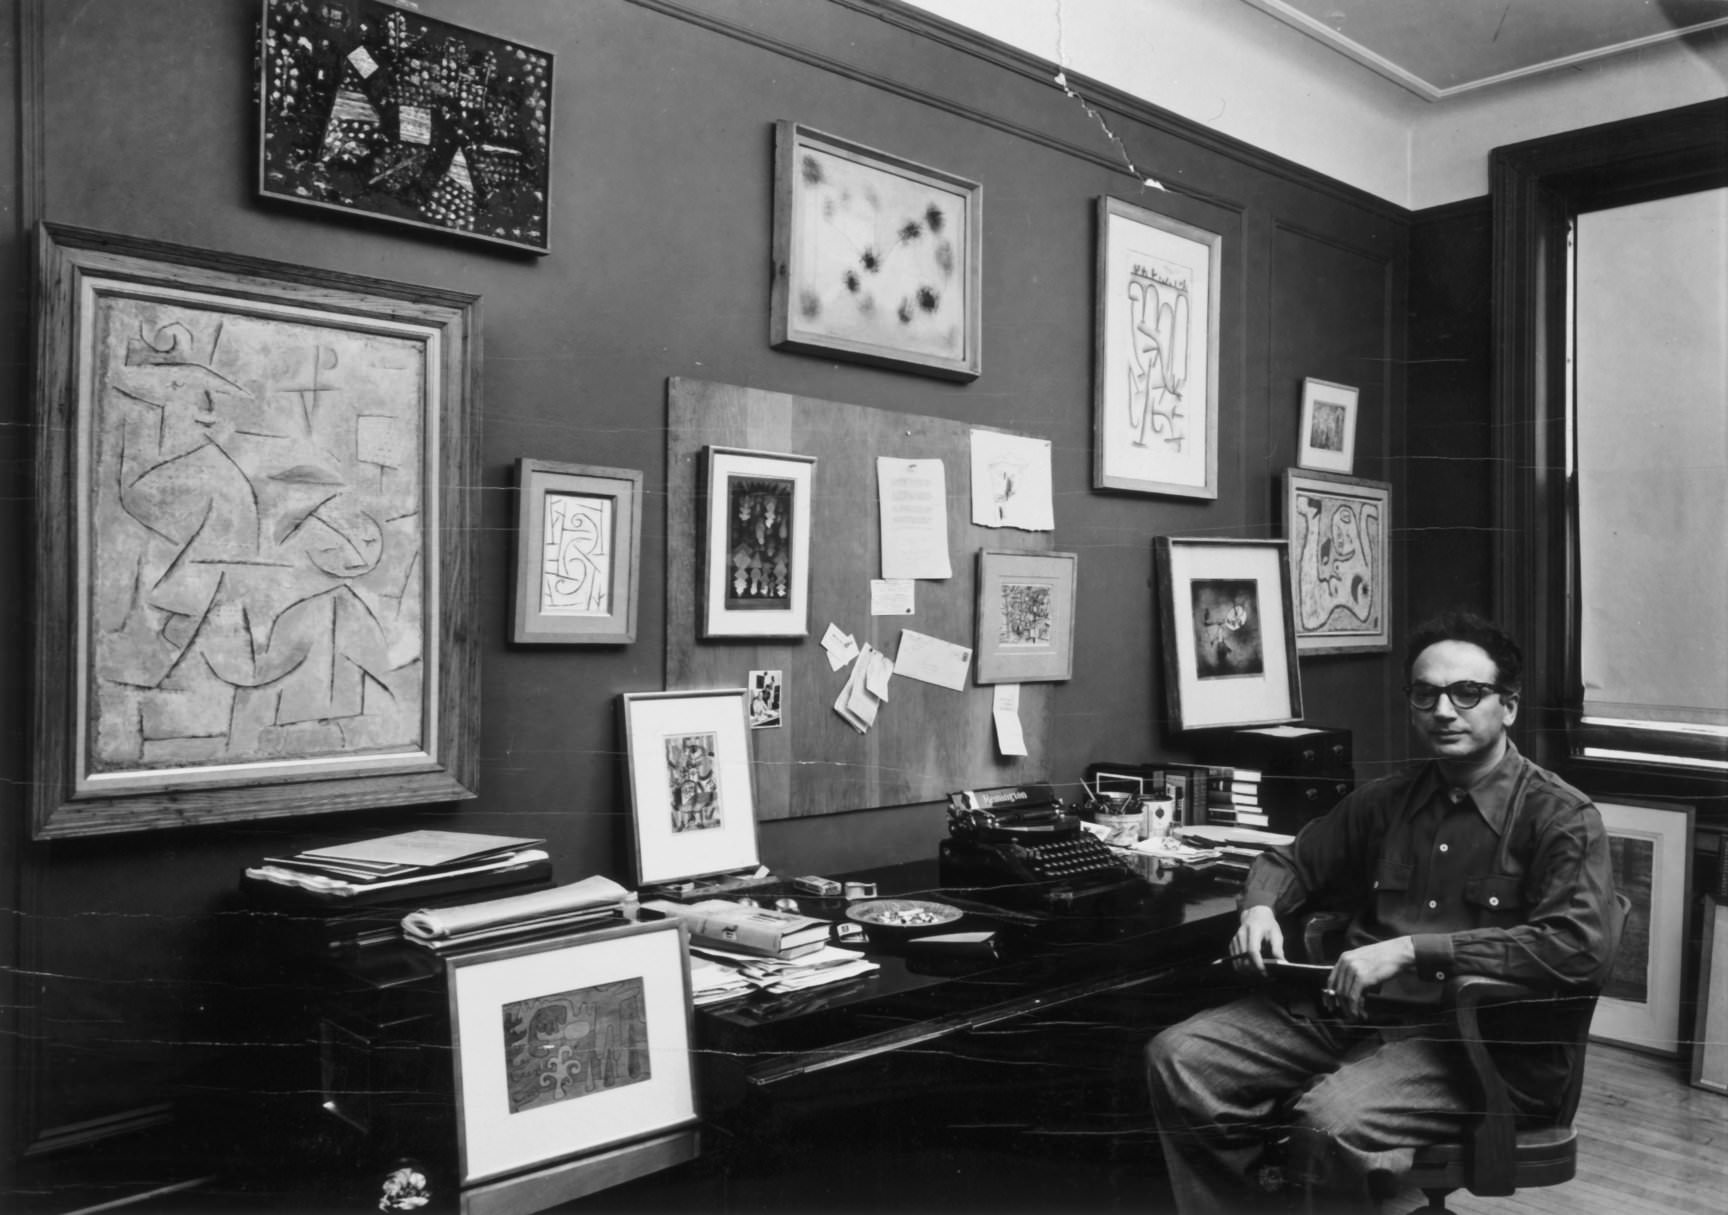 fig. 17 Clifford Odets at his desk with a selection of his Paul Klee collection, 1951, Photograph by Aaron Siskind, Courtesy of Michael Rosenfeld Gallery LLC, New York, NY, © Michael Rosenfeld Gallery LLC, New York, NY